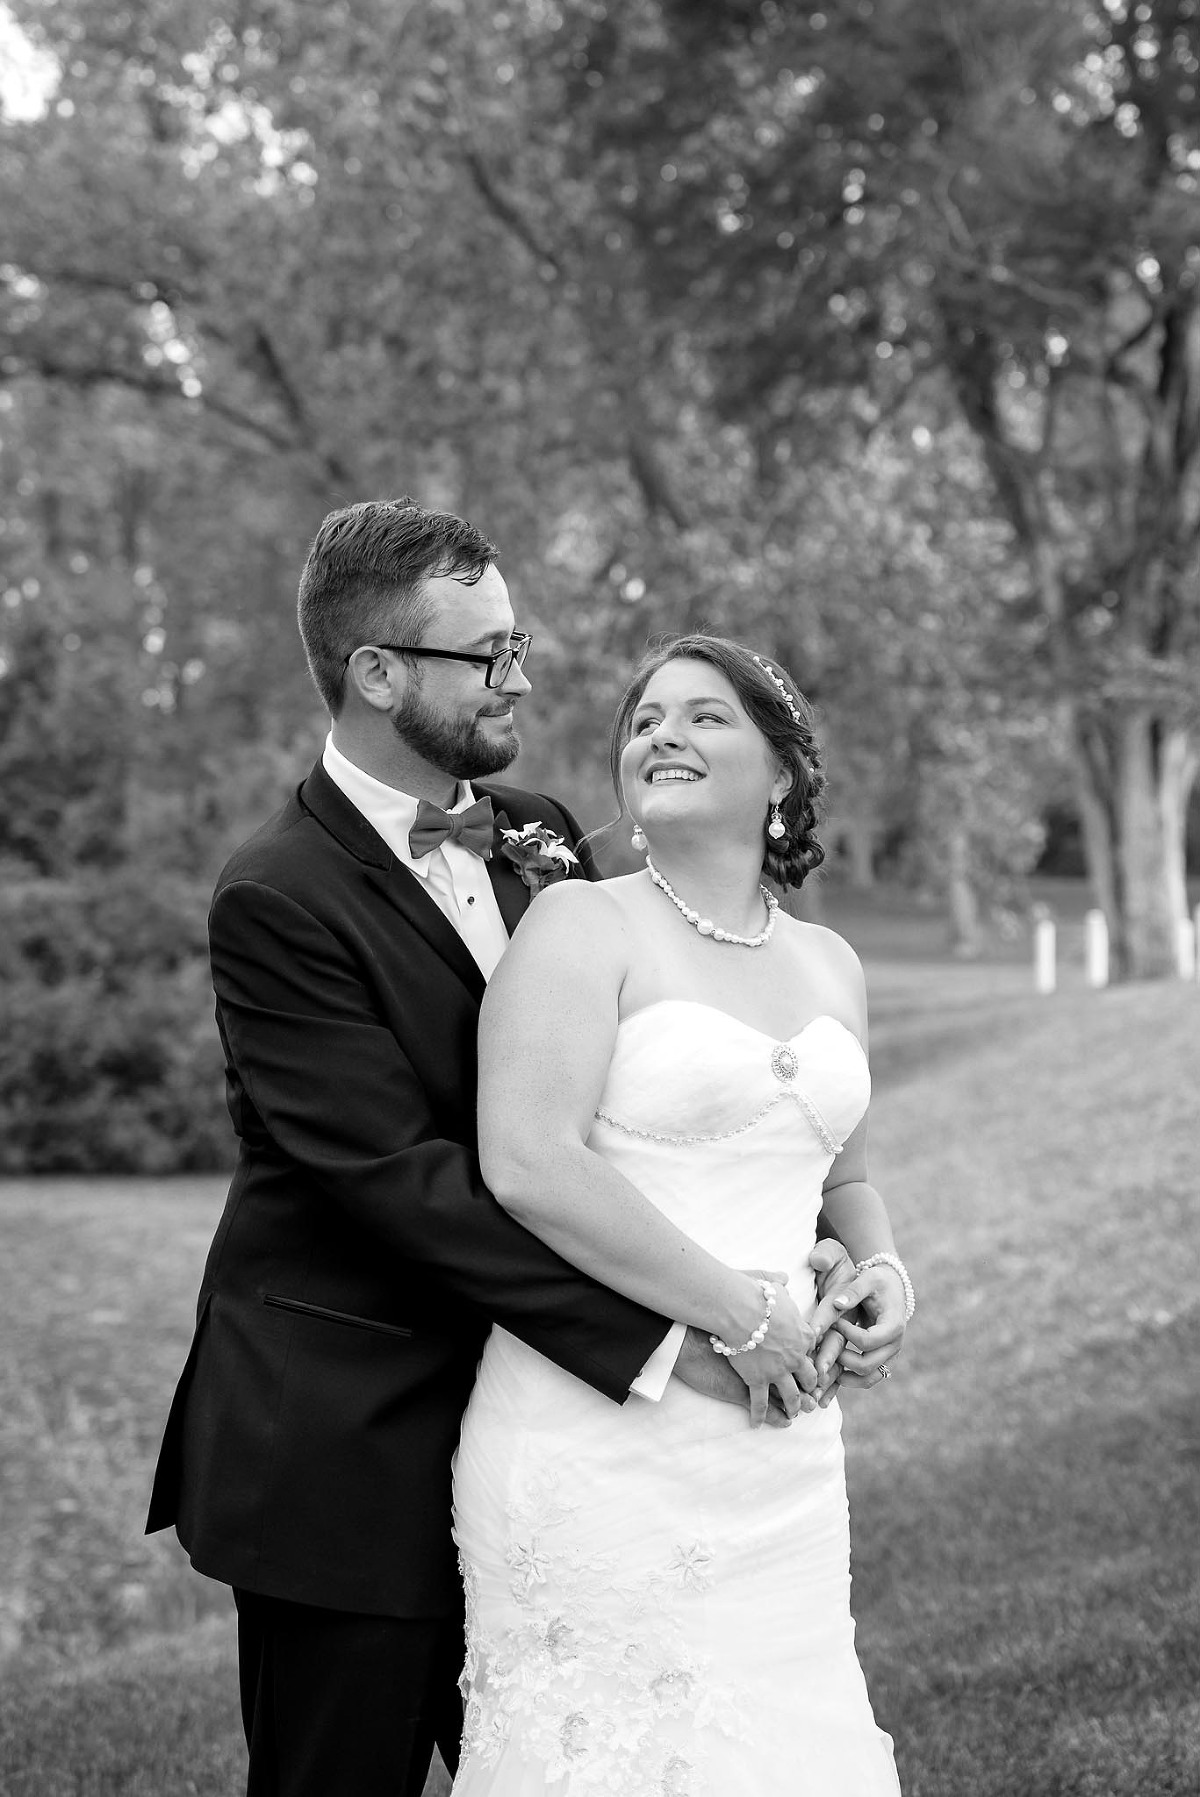 Black and white image of groom embracing bride at romantic outdoor wedding at Park Edelweiss in Fort Wayne, Indiana